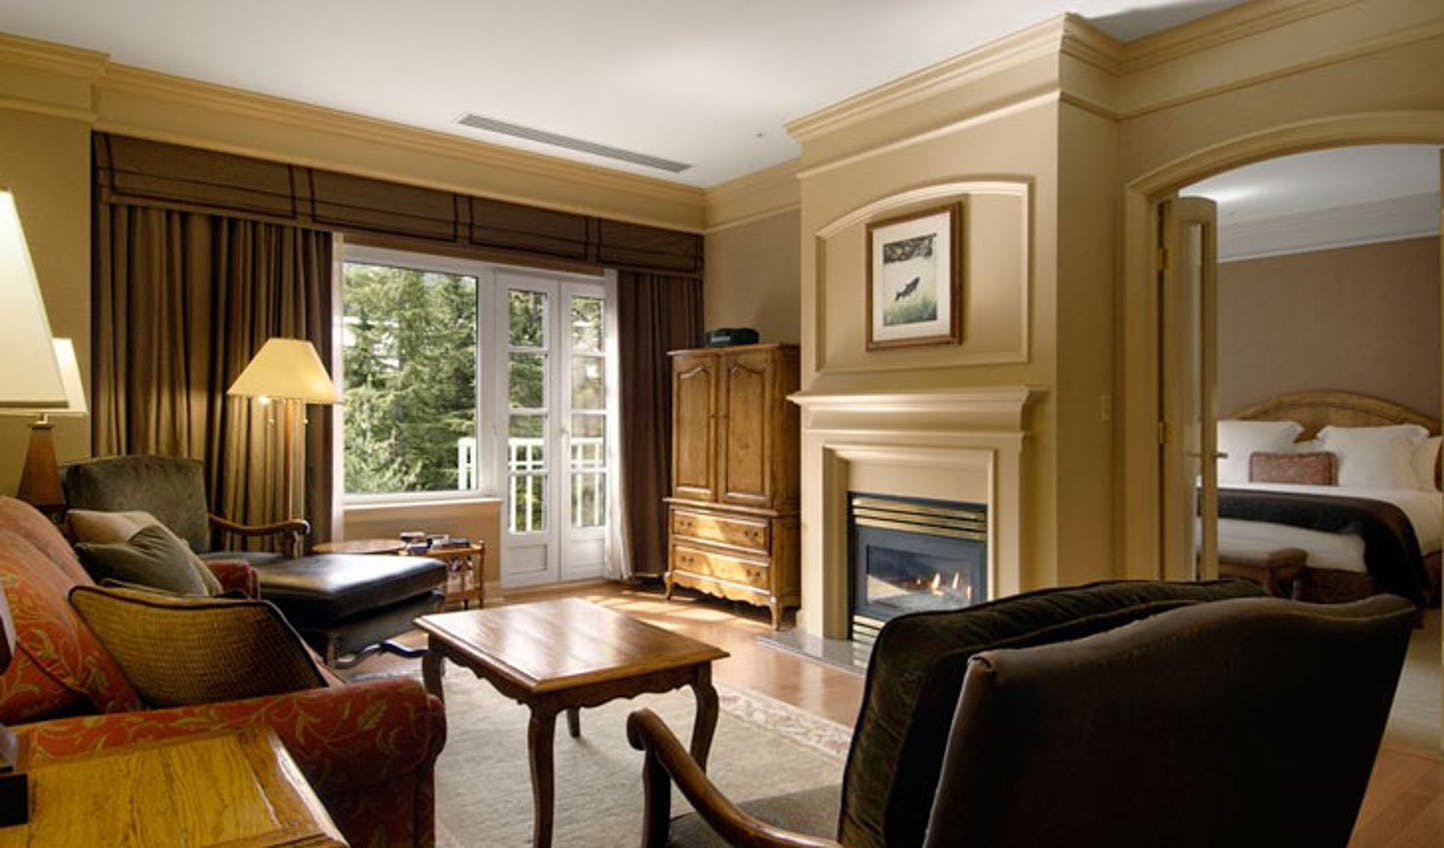 Luxury hotel the Fairmont Chateau Whistler in Whistler, Canada